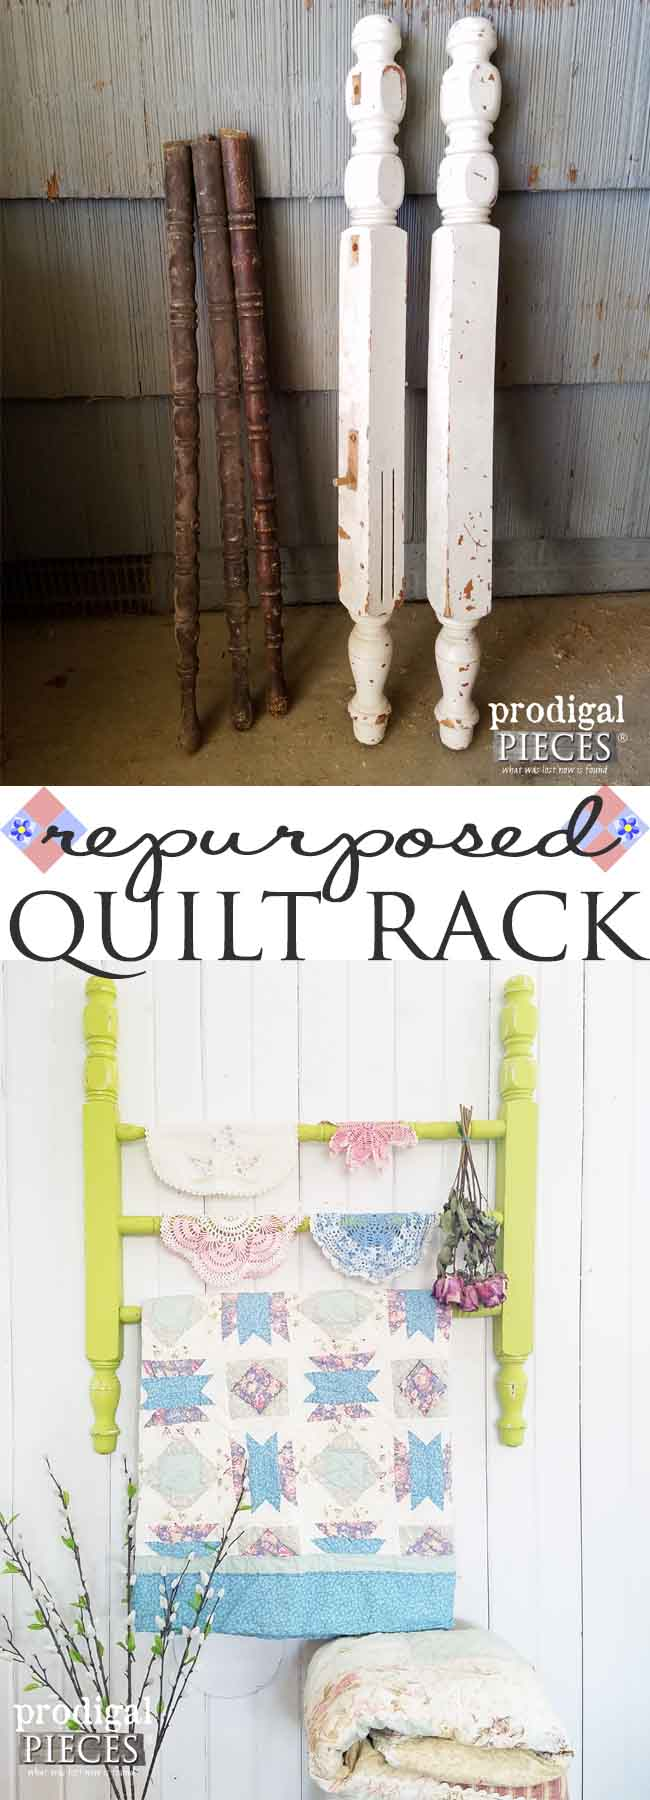 Build a DIY quilt rack using repurposed parts. Prodigal Pieces shows you how! Head here: prodigalpieces.com